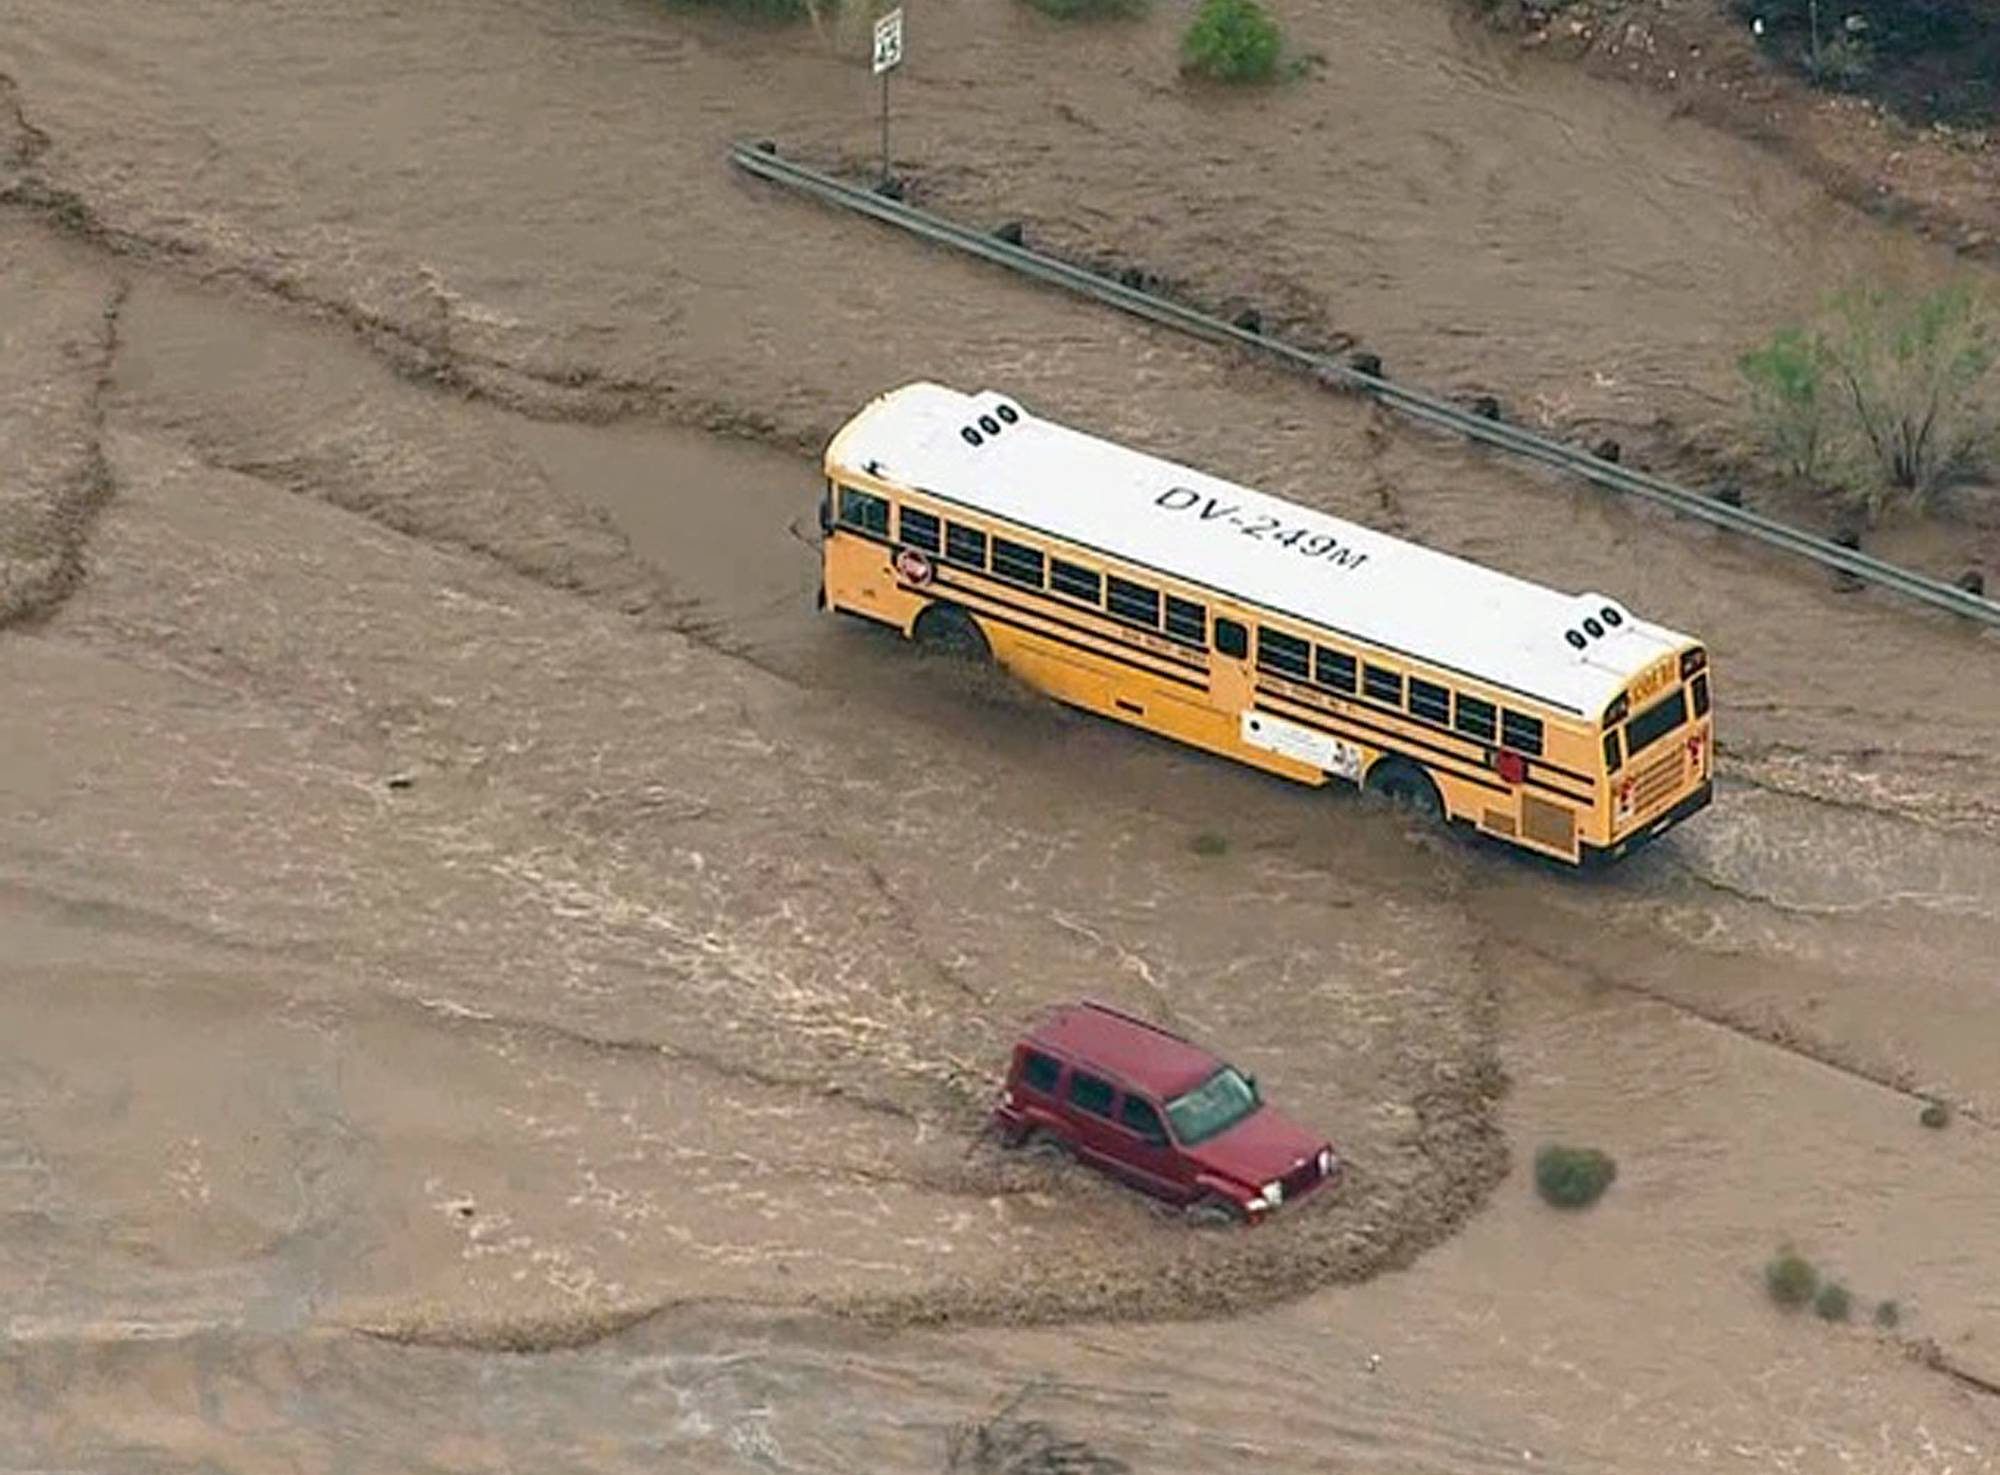 A school bus navigates a flooded road north of Phoenix Tuesday. It was not known if there were children aboard the bus at the time. The area was flooded after several inches of rain pummeled the state.